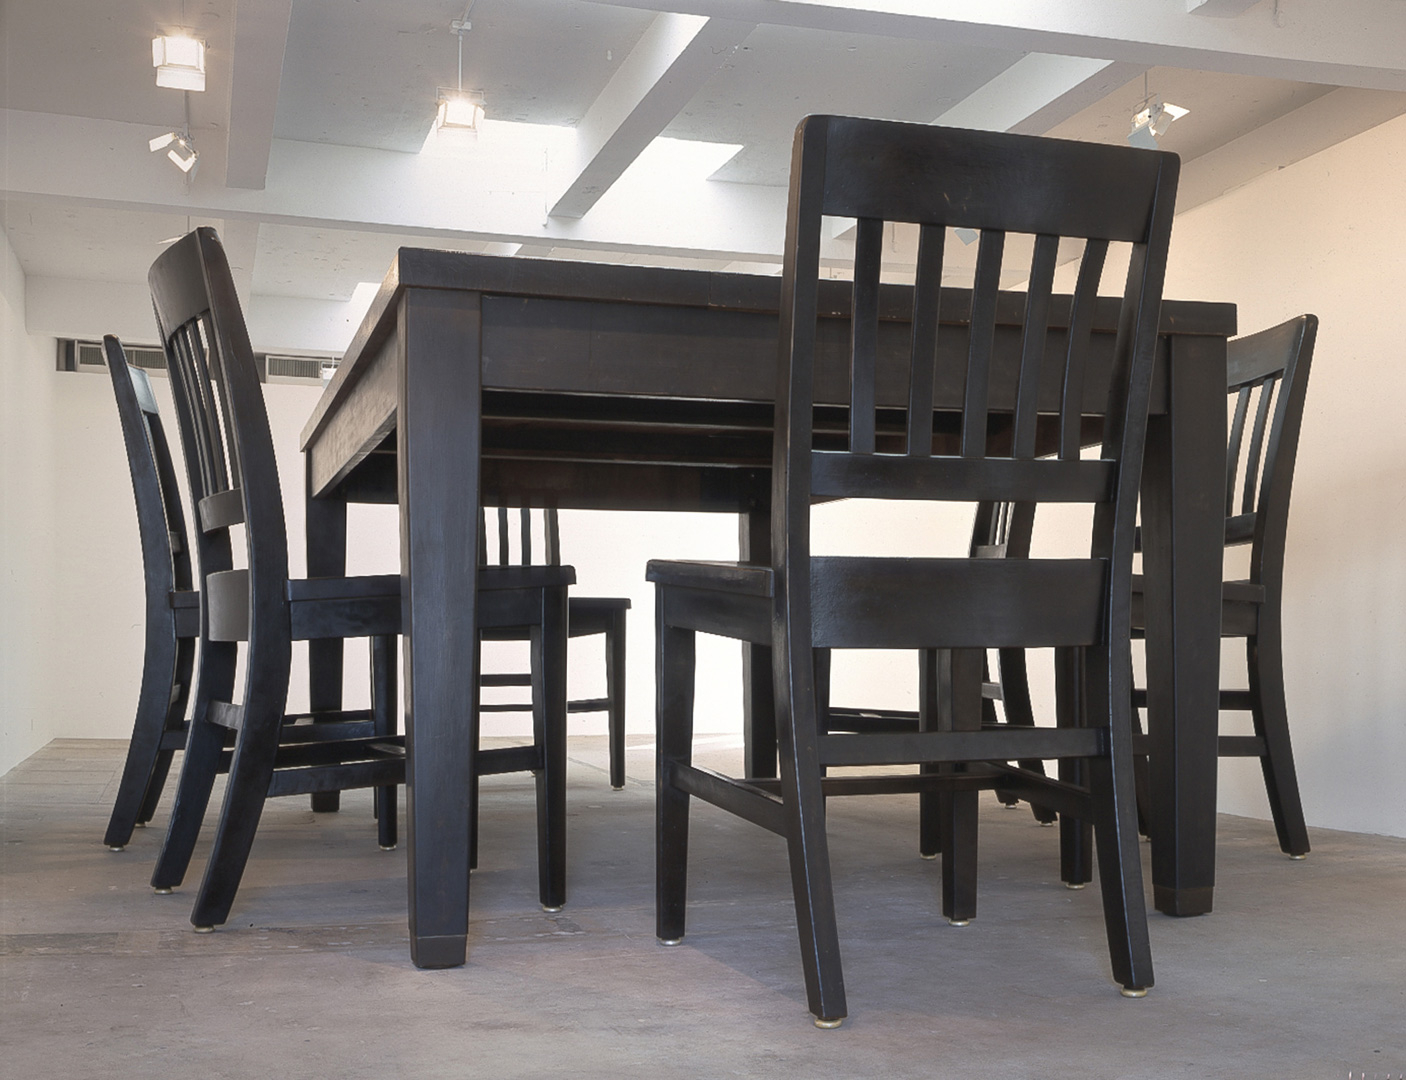 Under The Table Robert Therrien The Broad in measurements 1406 X 1080